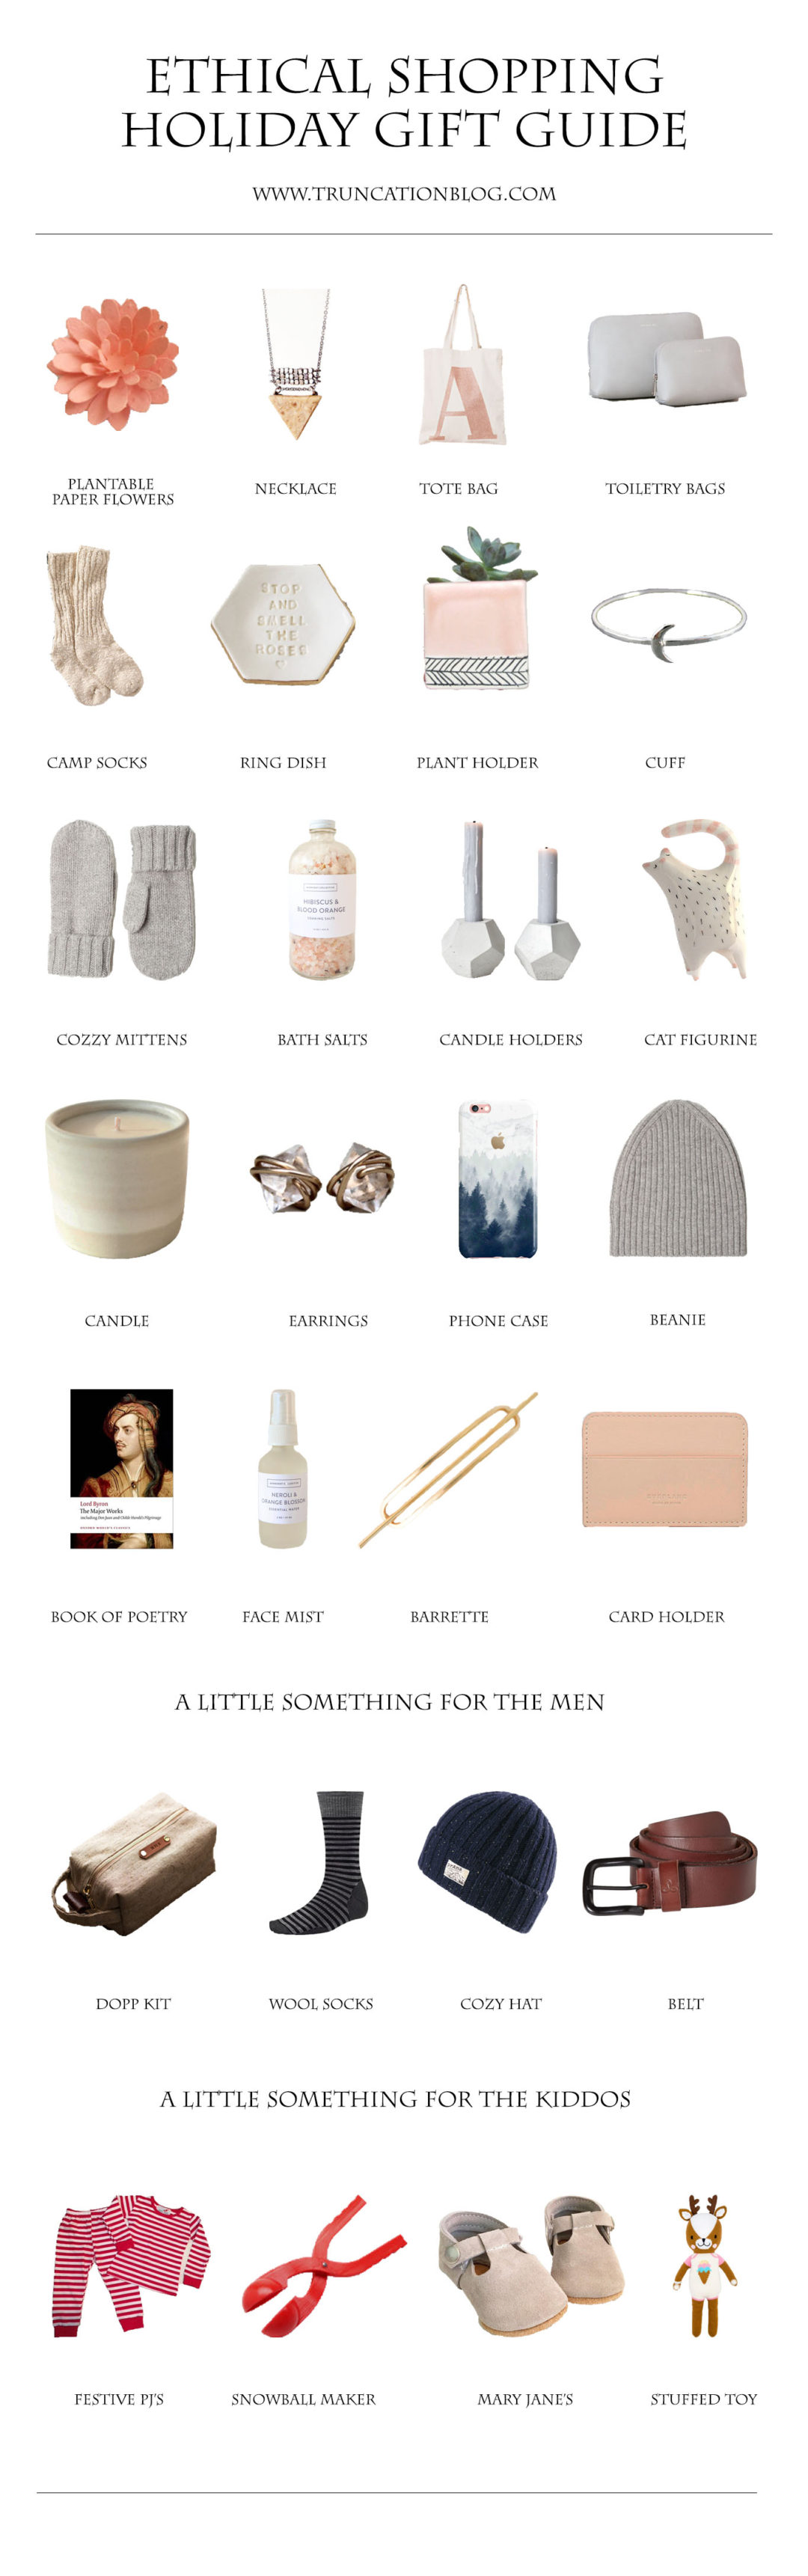 Ethical Shopping Holiday Gift Guide